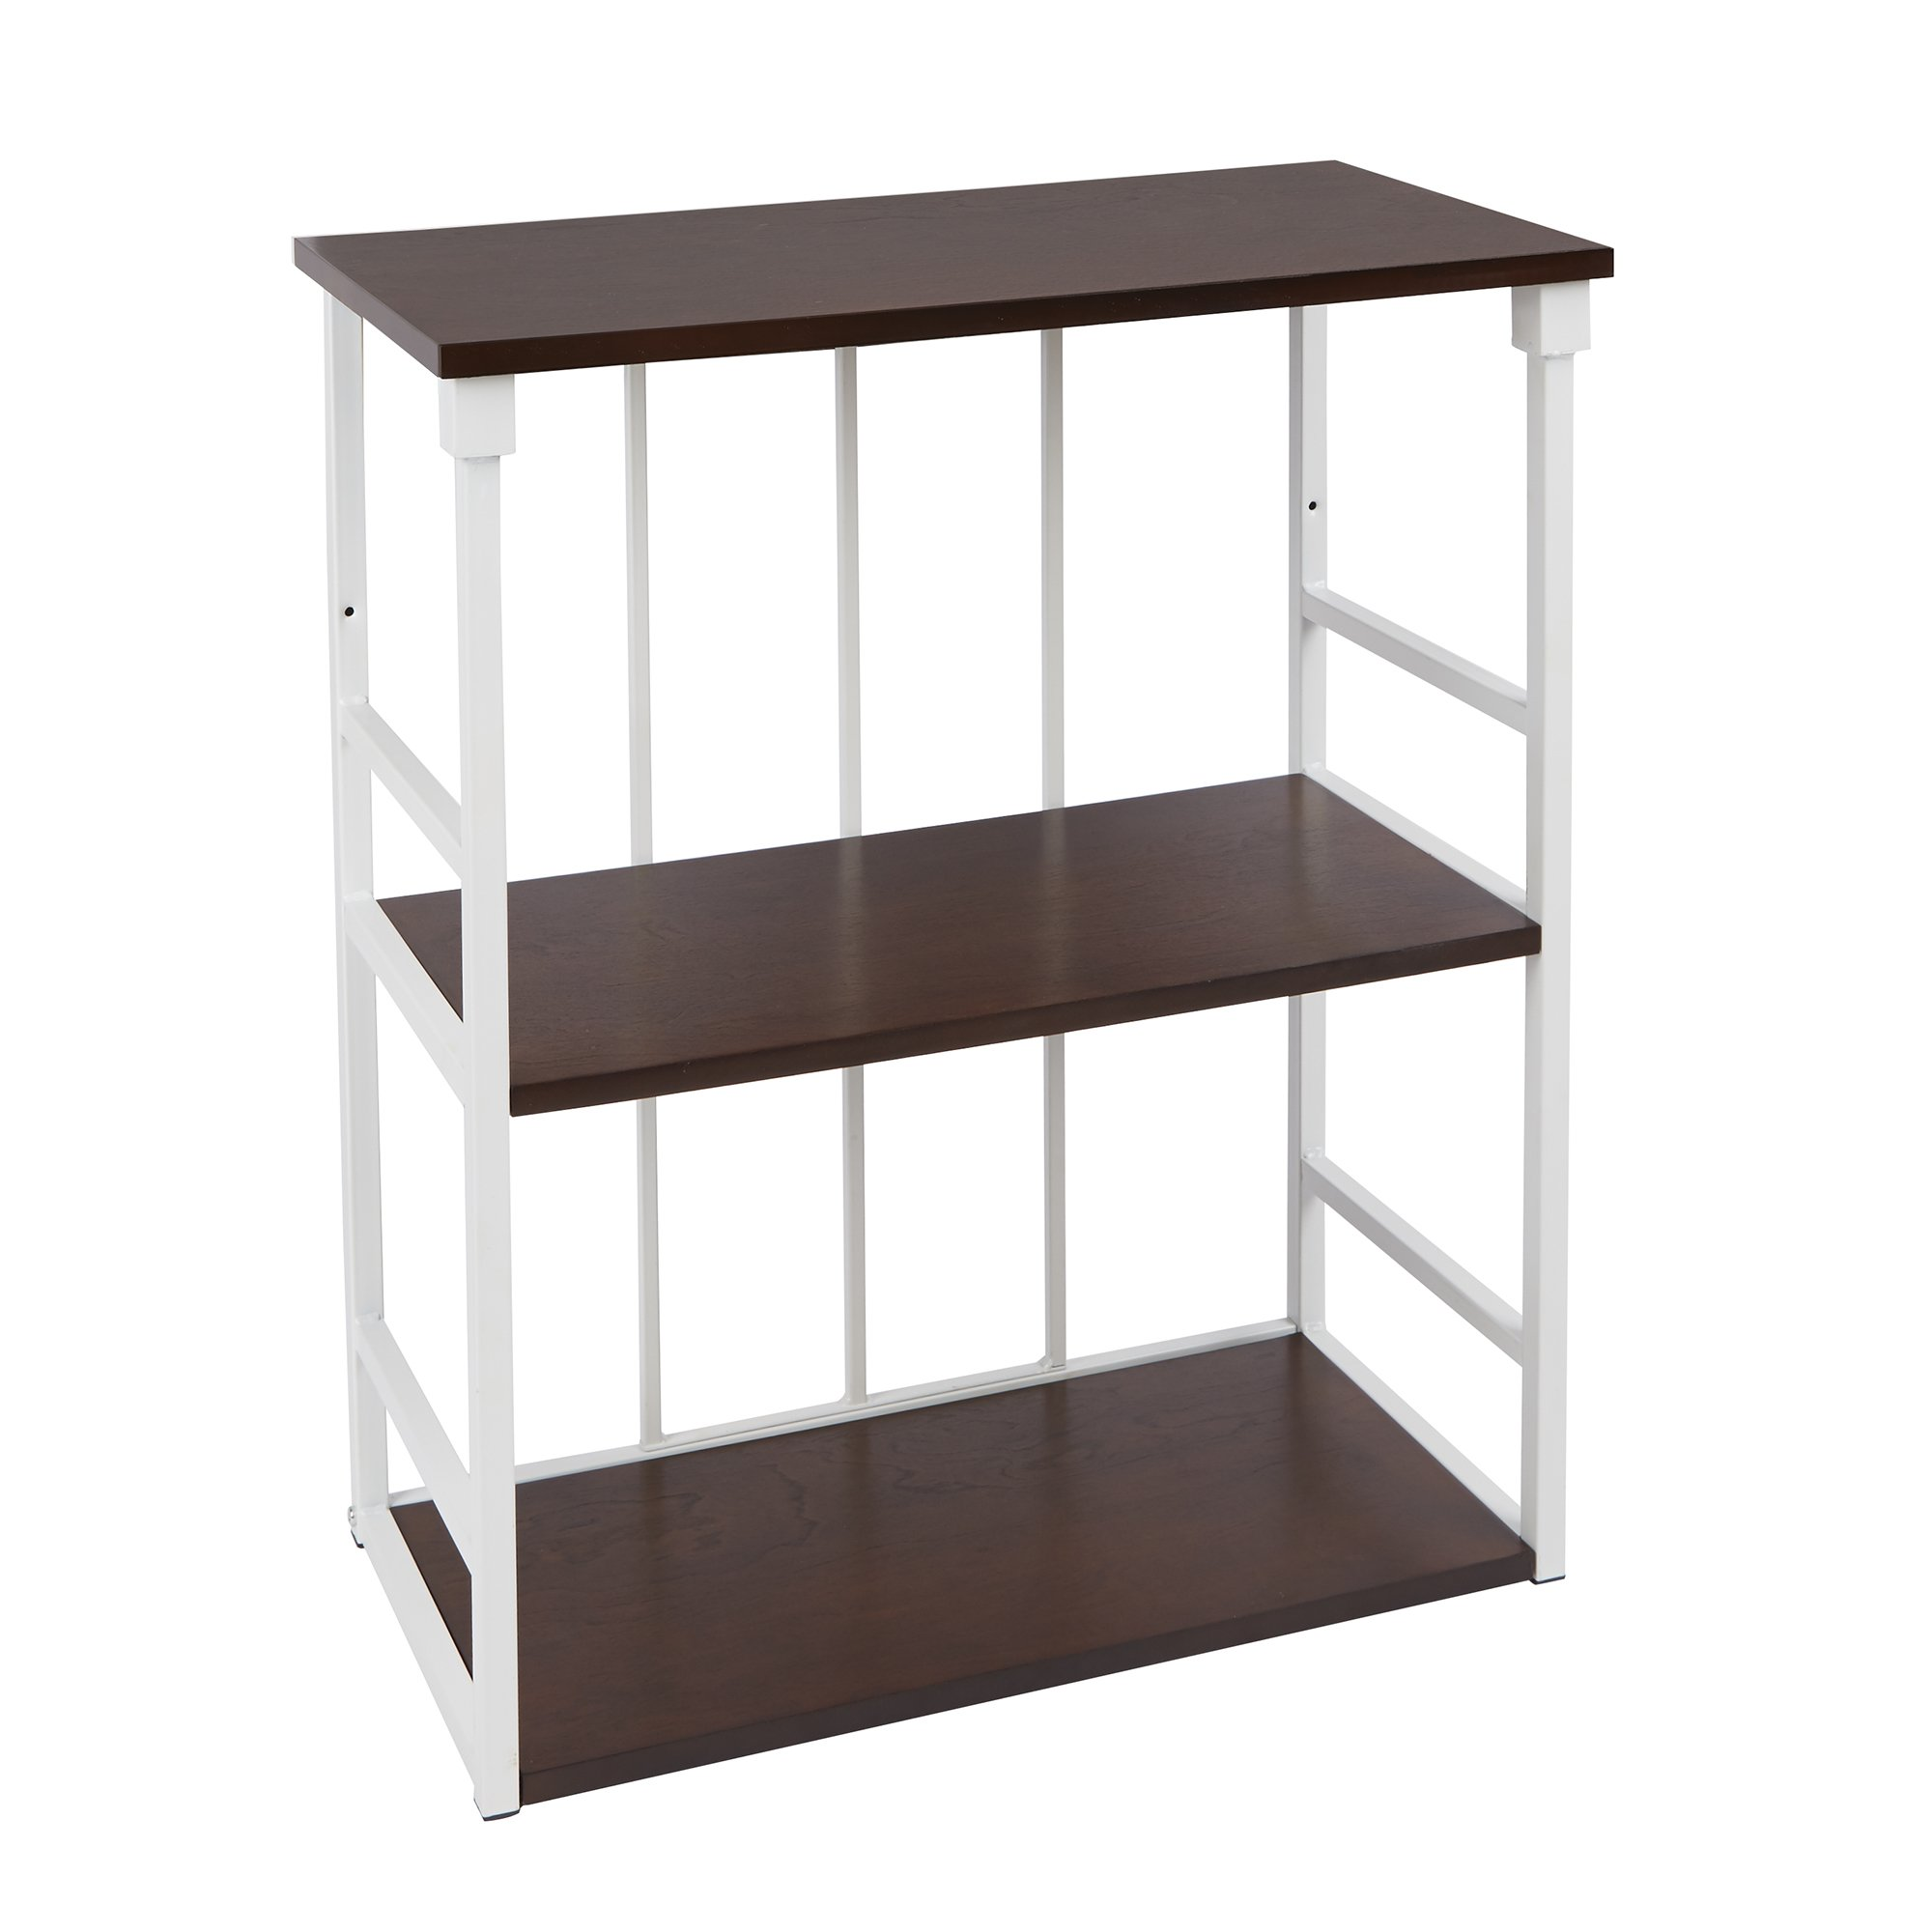 Silverwood Mixed Material Bathroom Collection 3-Tier Wall Shelf 3, 24'' W x 28'' H, White